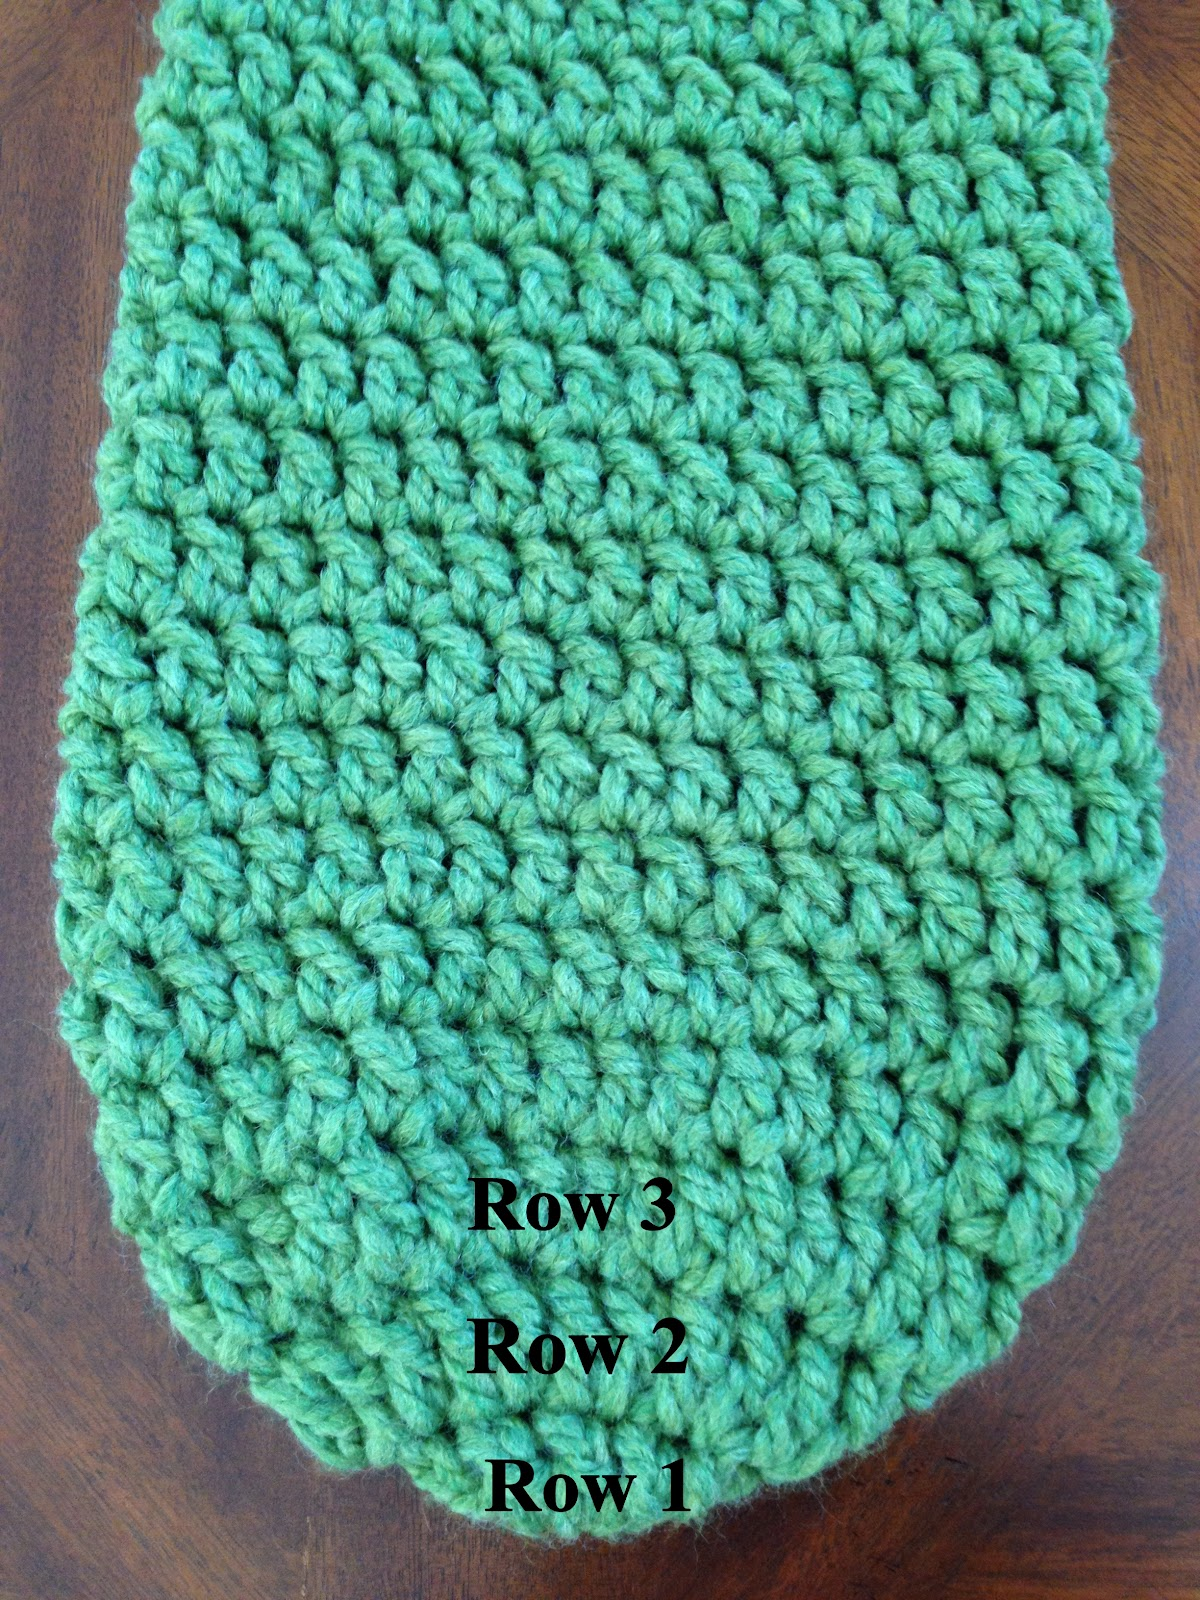 The Florida Crochet Garden: Crochet Baby Cocoon Very Easy ...